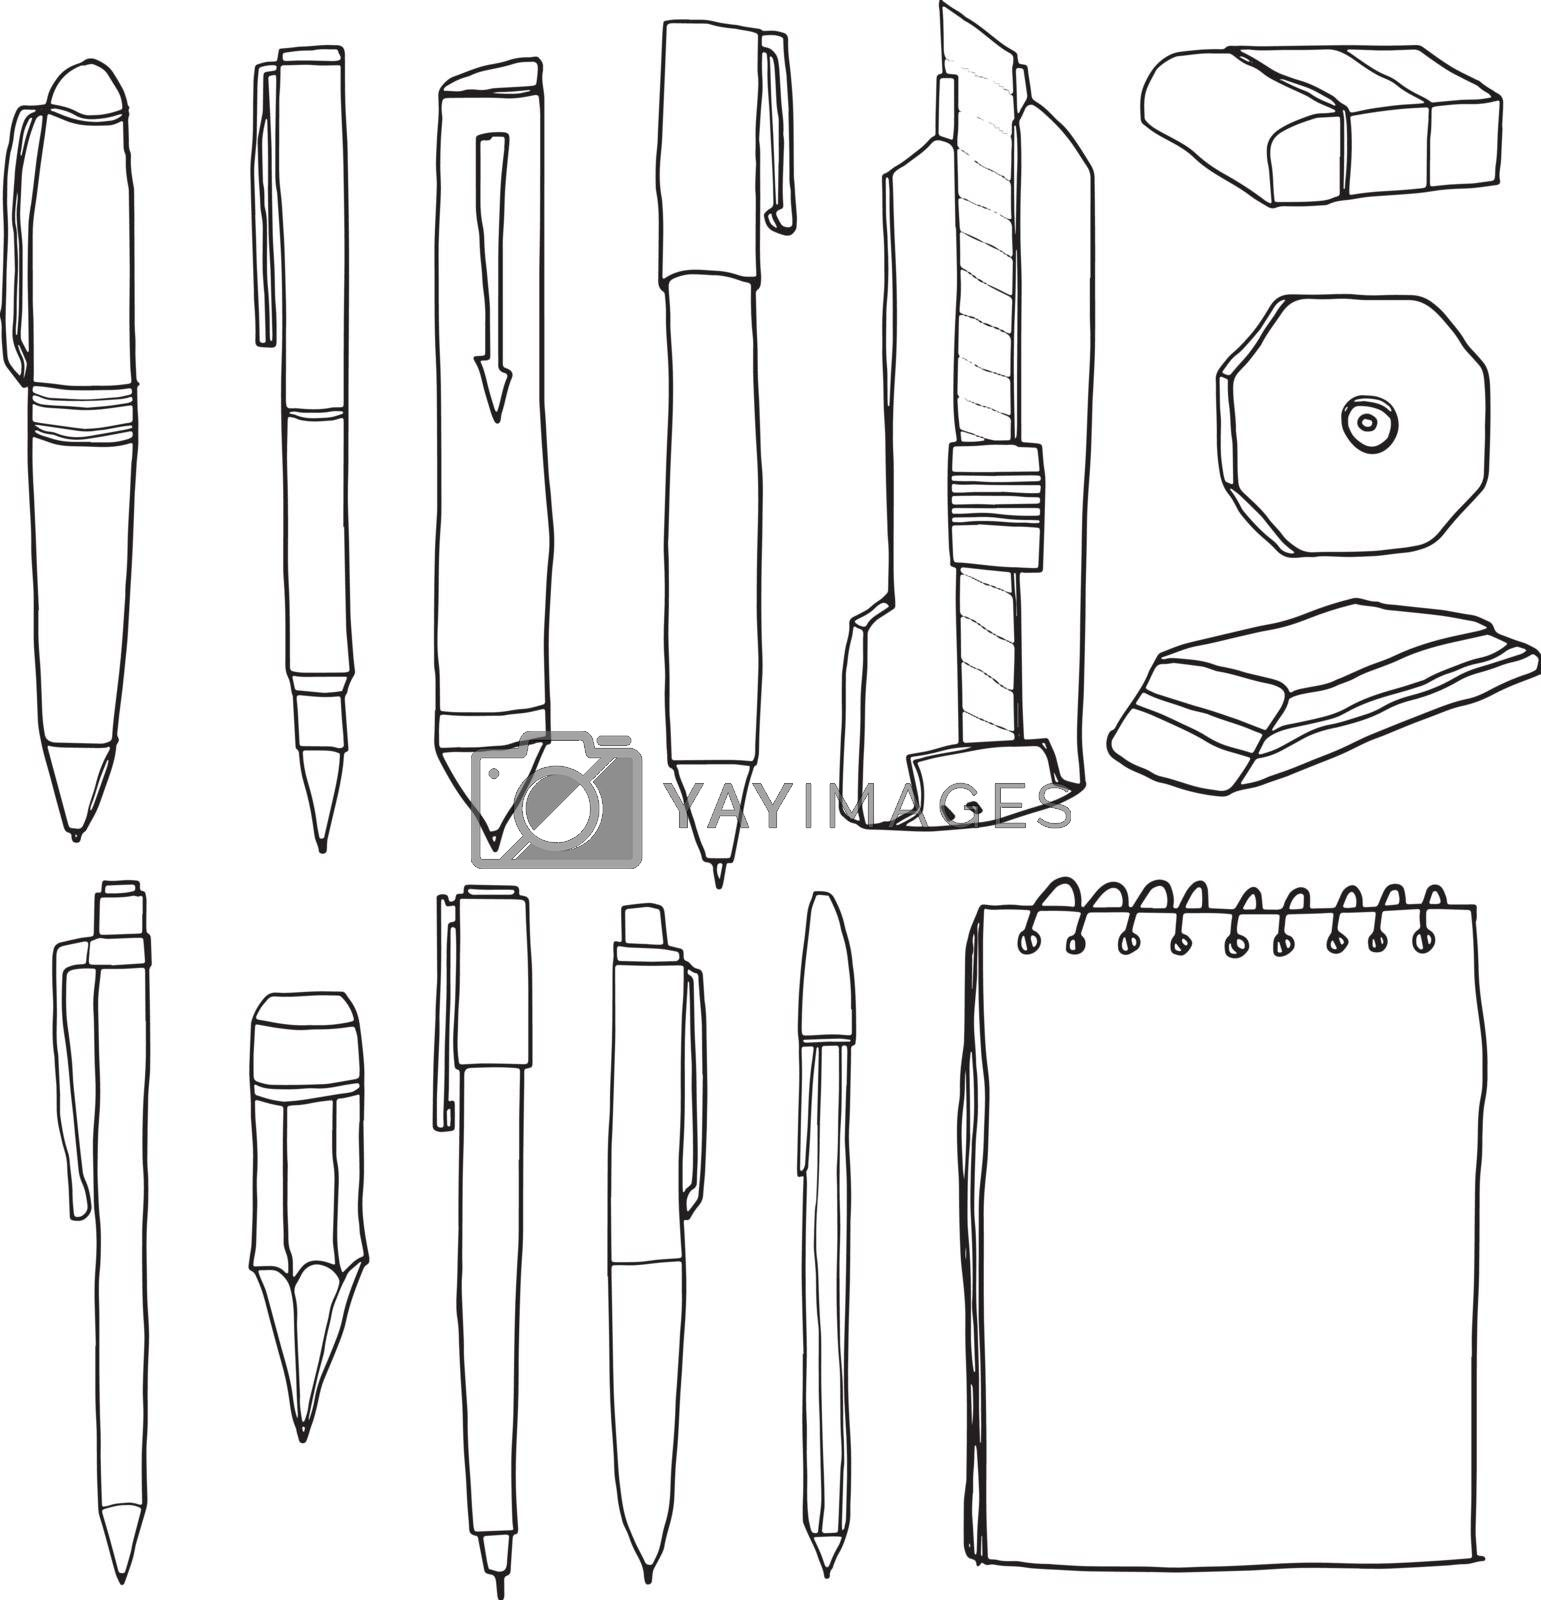 office supplies  pencil pens cutter eraser line art vector  illustration